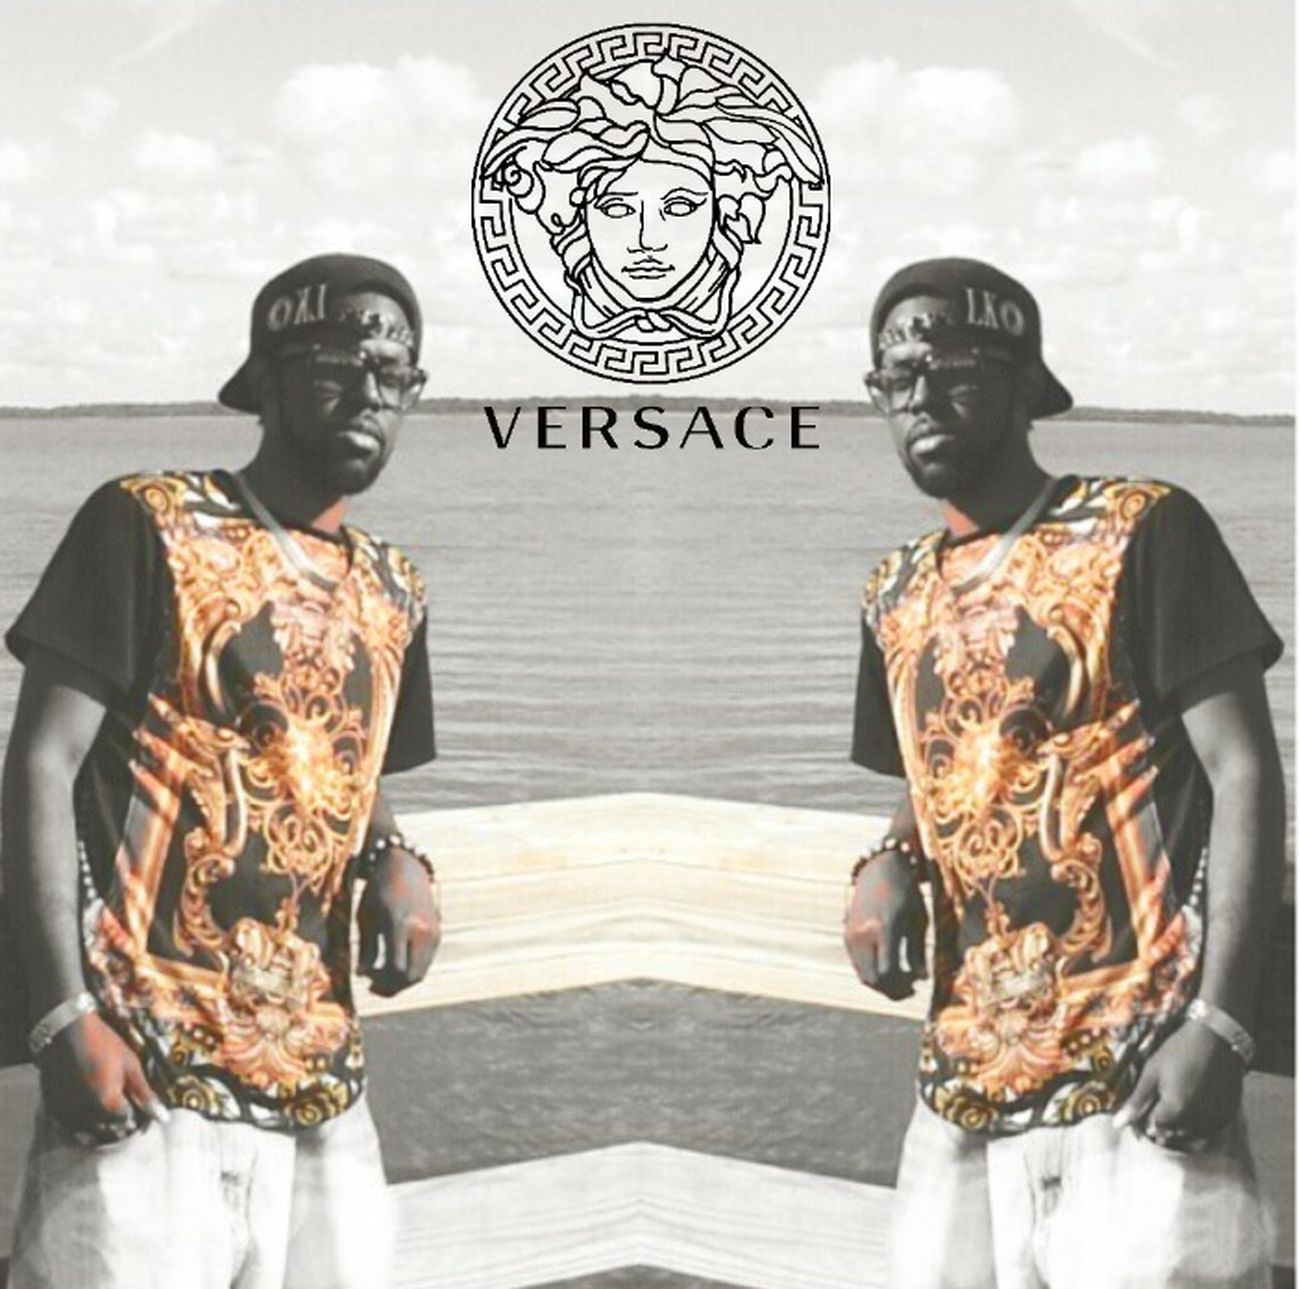 Versace VersaceFrames Modeling Photography Travel Photography Photoshooting Photoshoot Highendfashion Menswear Menwithclass